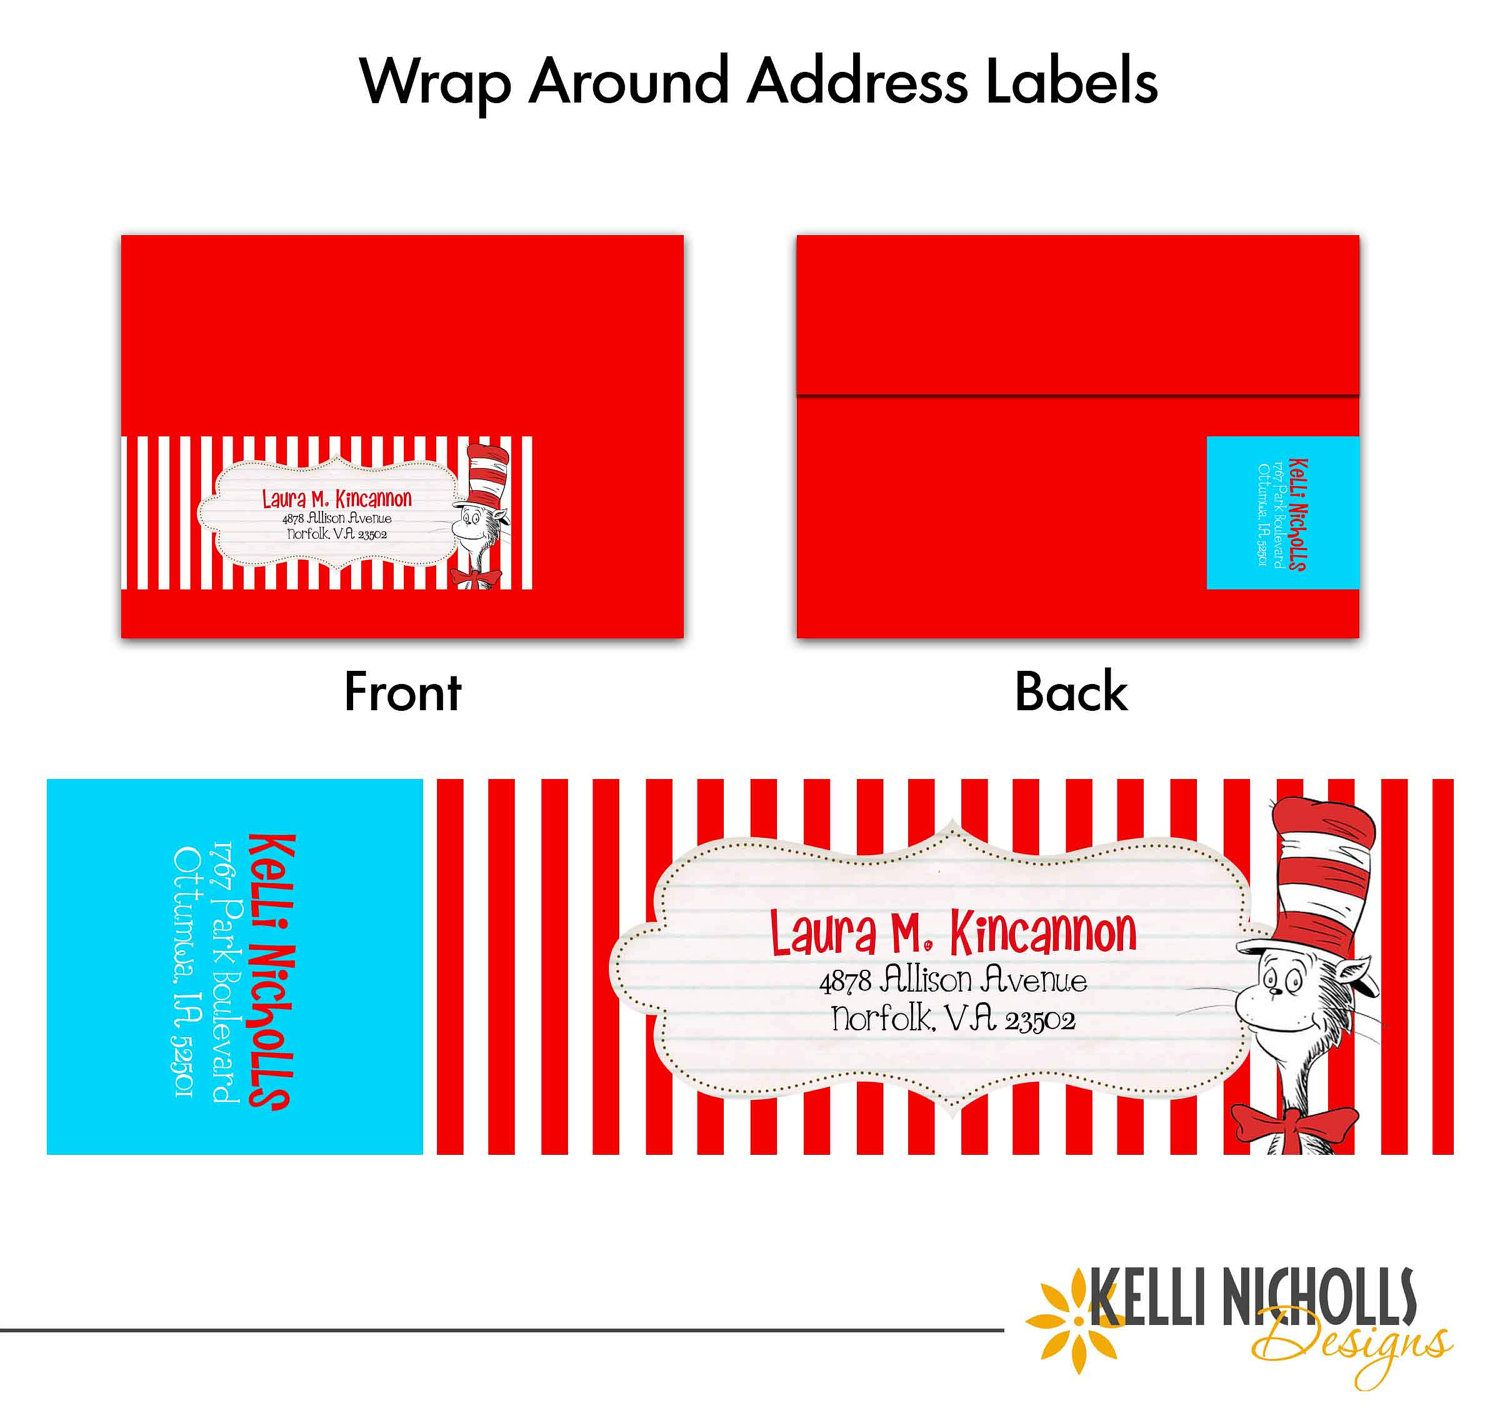 Cat In The Hat Wrap Around Return Address Labels 10 00